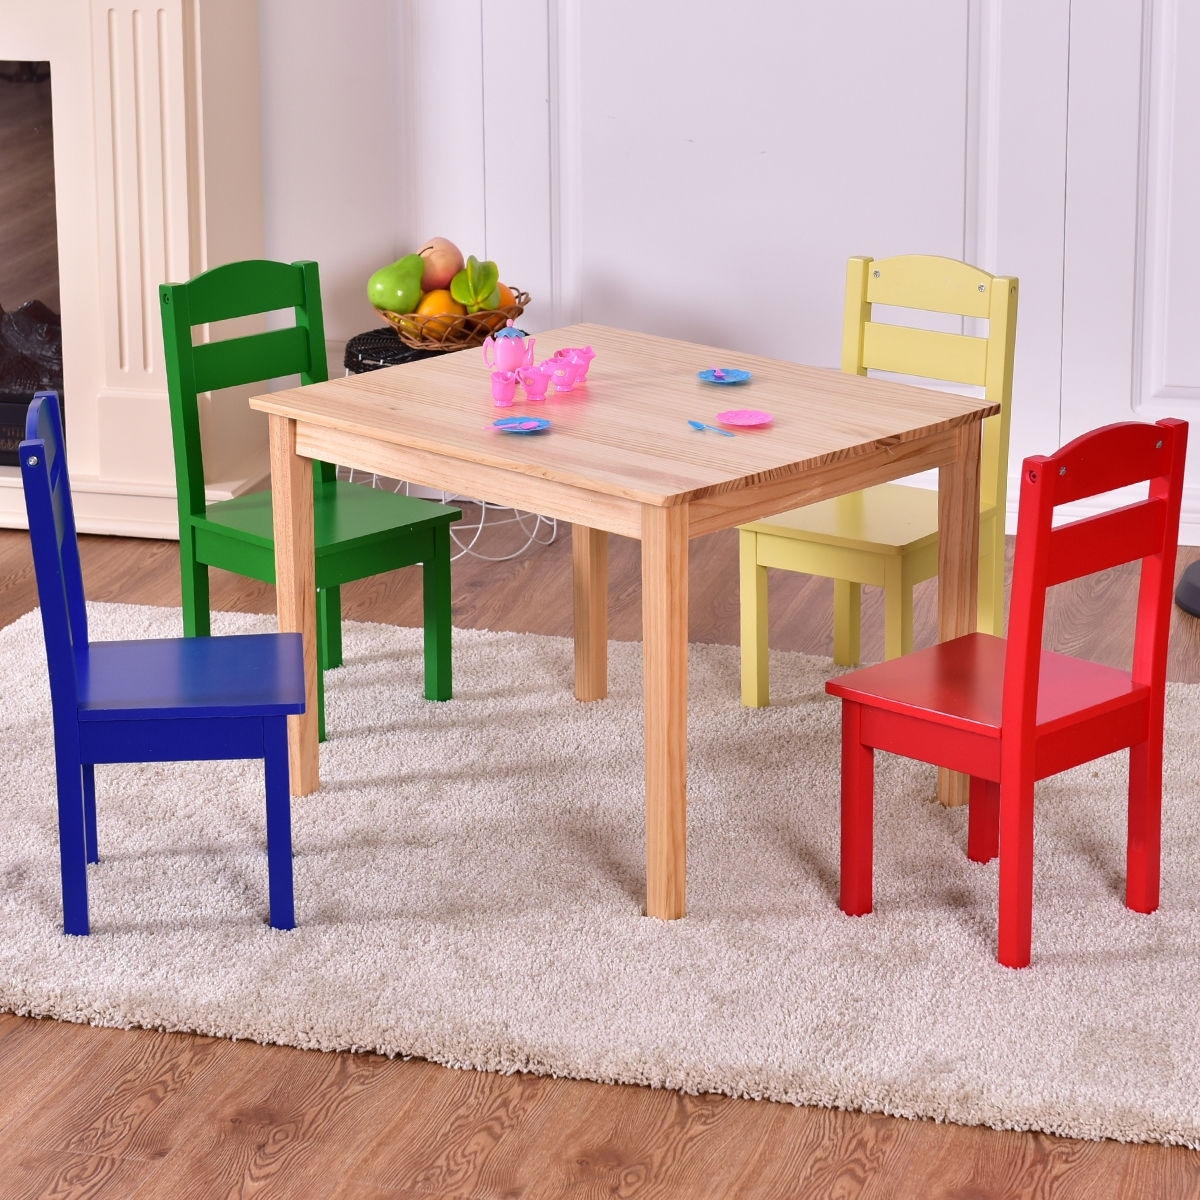 Childrens Wooden Table And Chairs Costway Kids 5 Piece Table Chair Set Pine Wood Multicolor Children Play Room Furniture